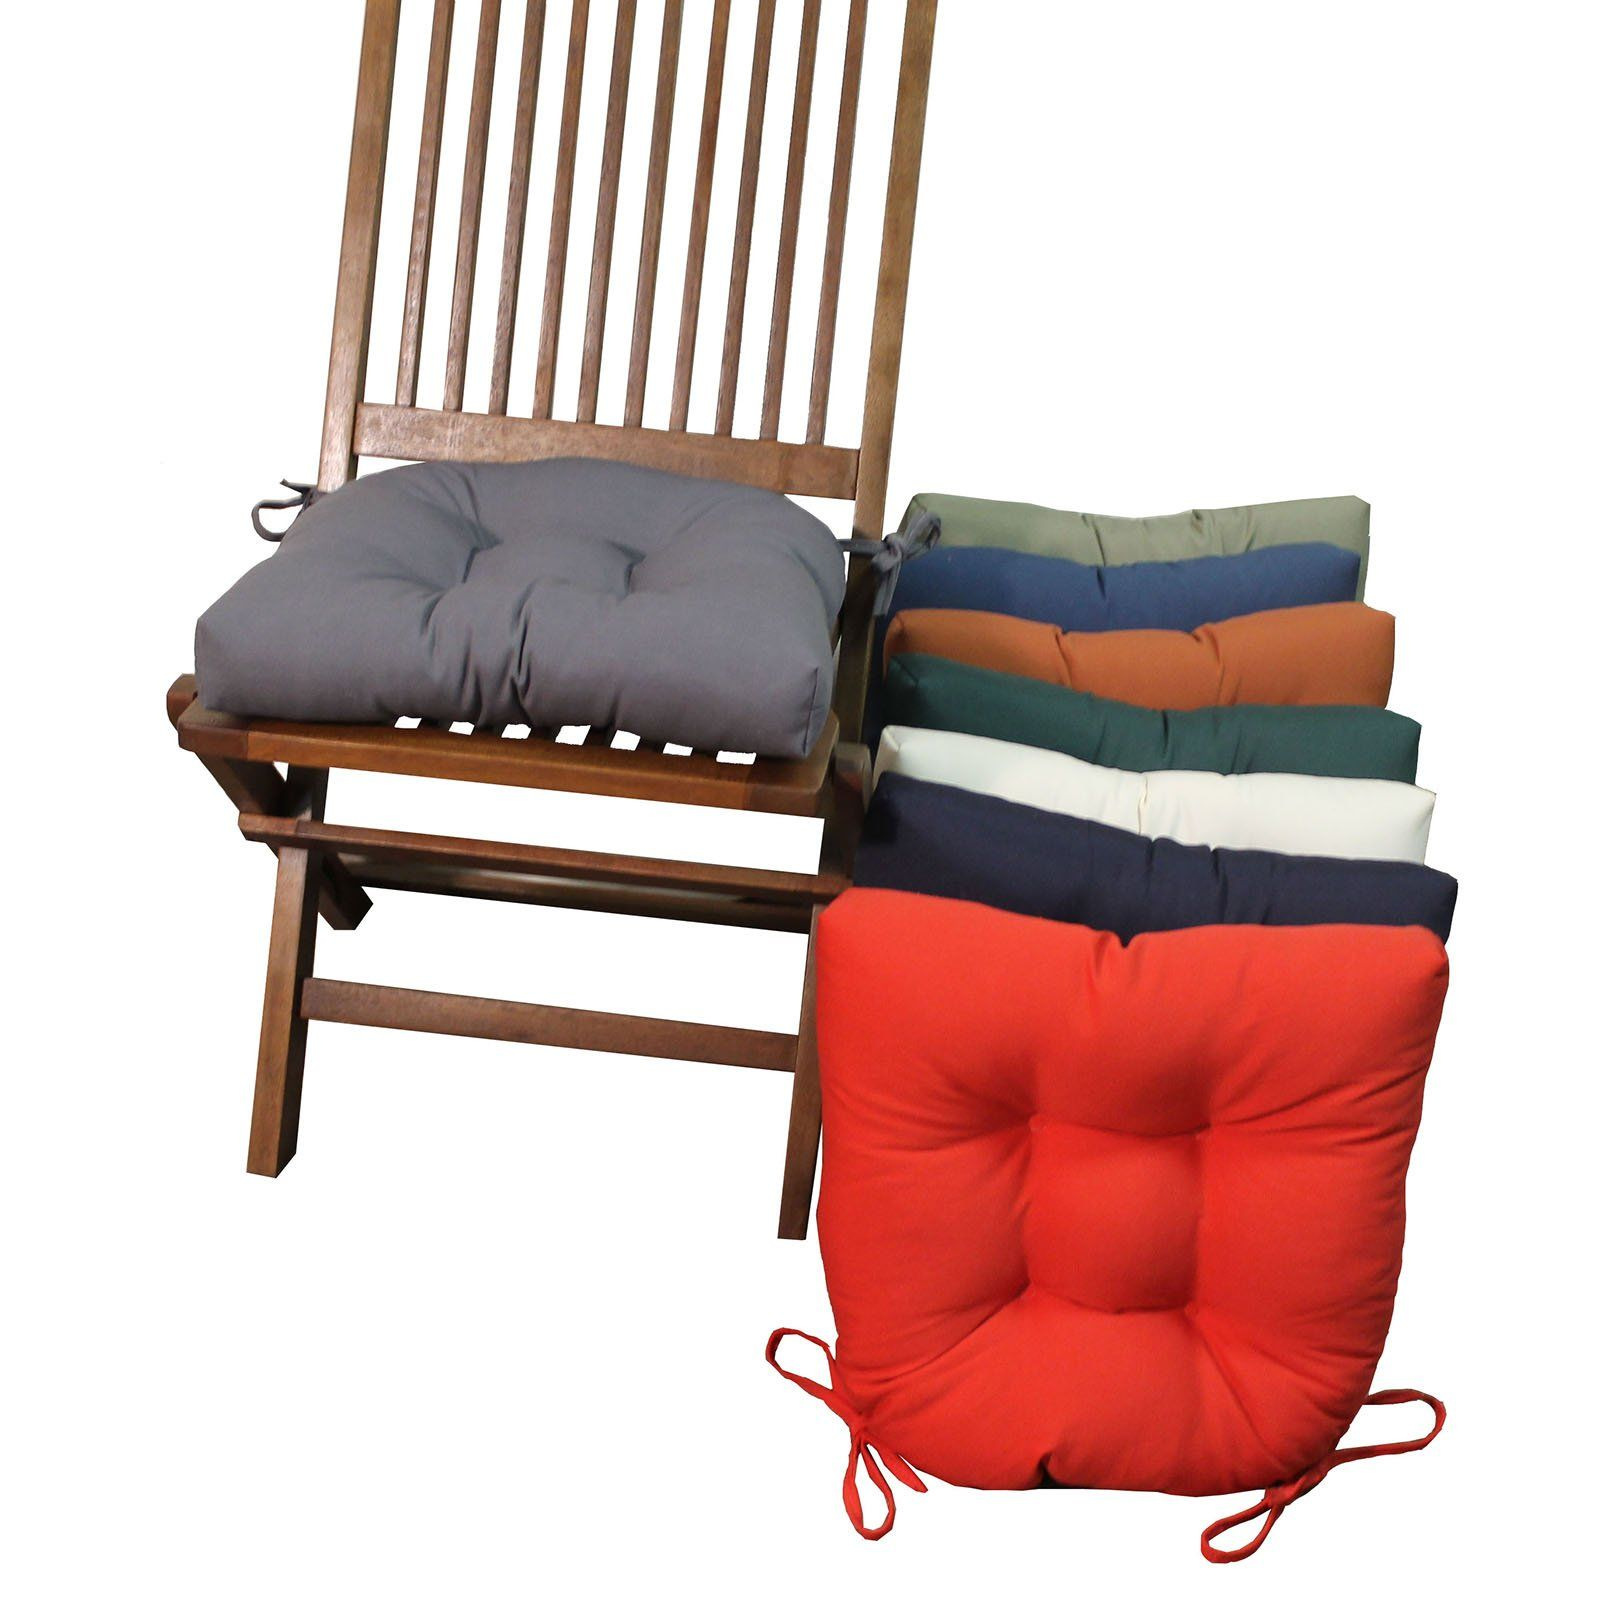 Park Art|My WordPress Blog_Wooden Chair Cushions With Ties